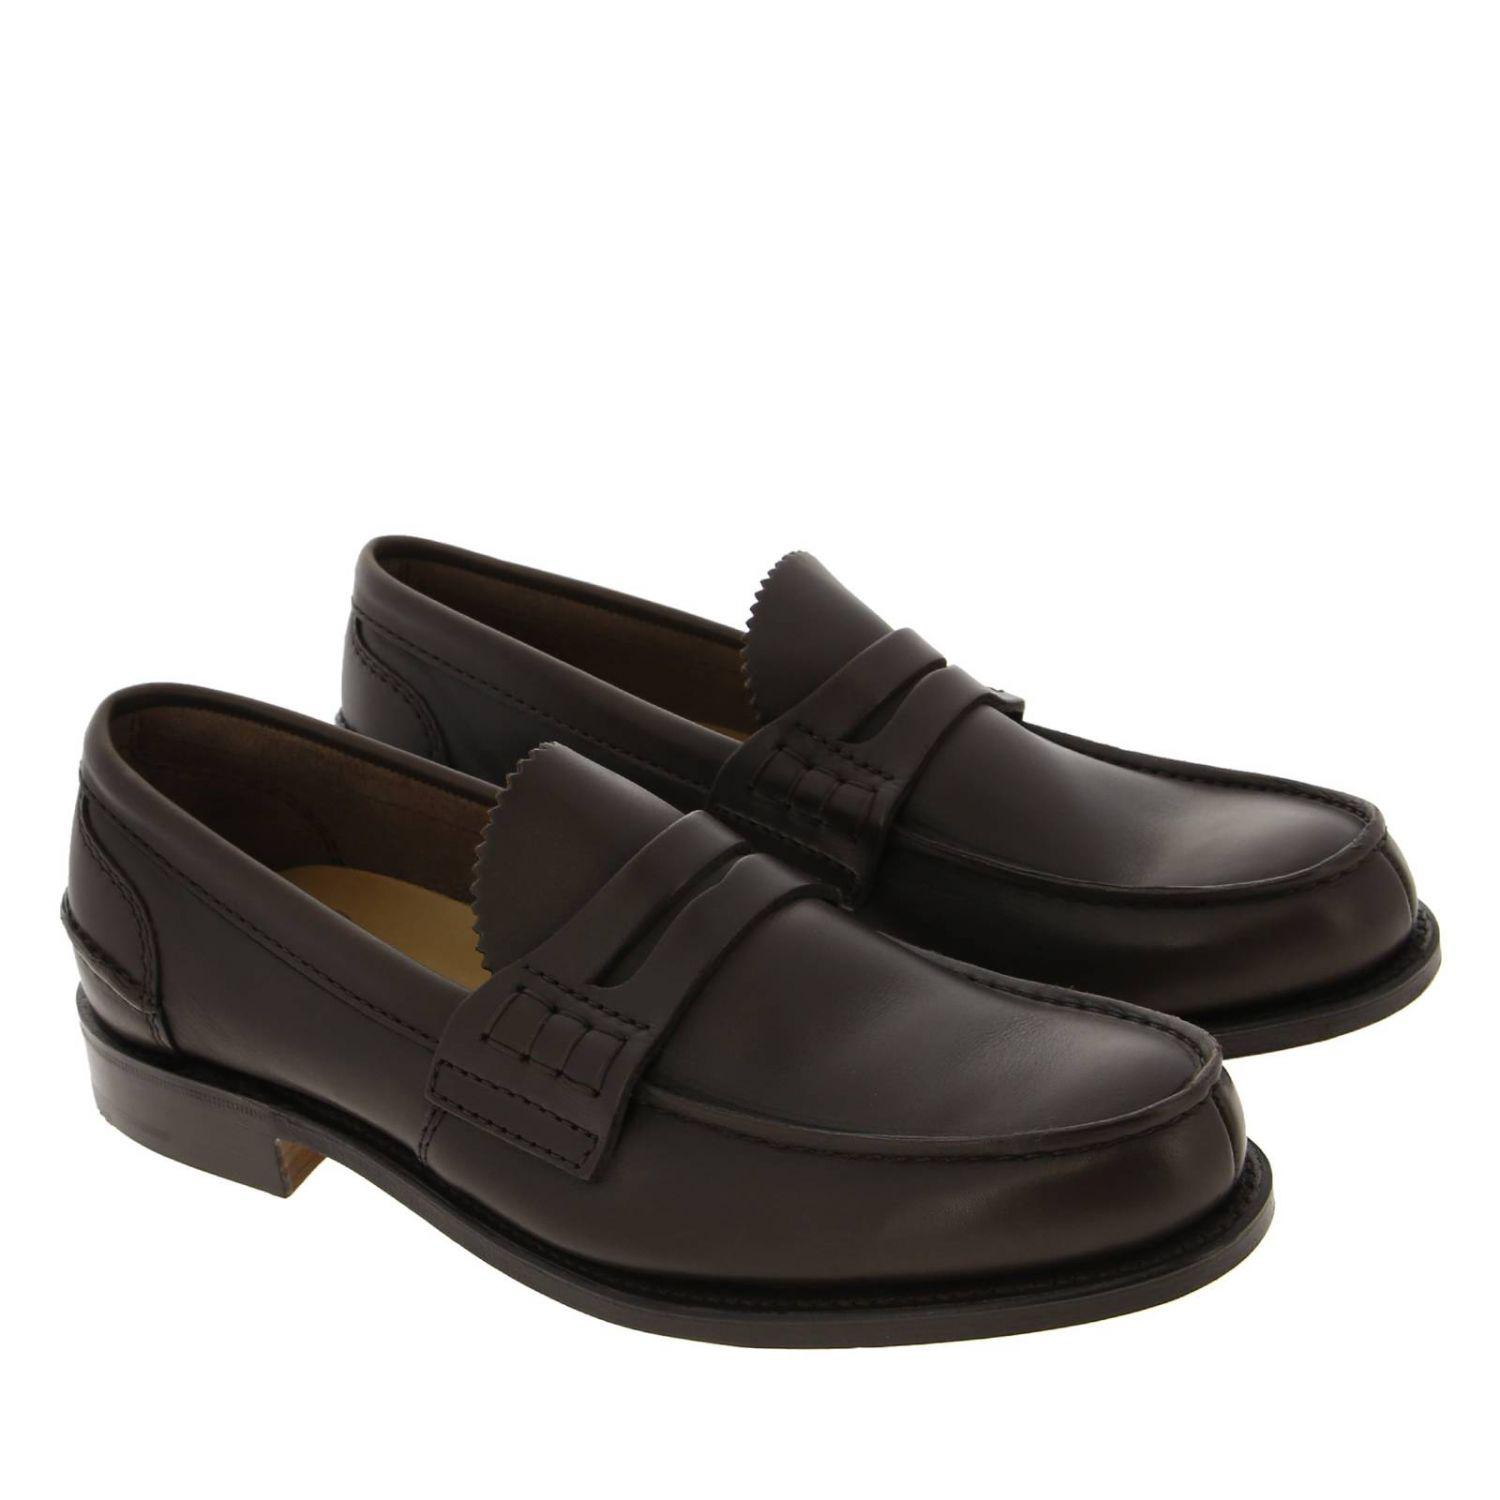 e4a7425ed6b Church s - Brown Loafers Shoes Men for Men - Lyst. View fullscreen